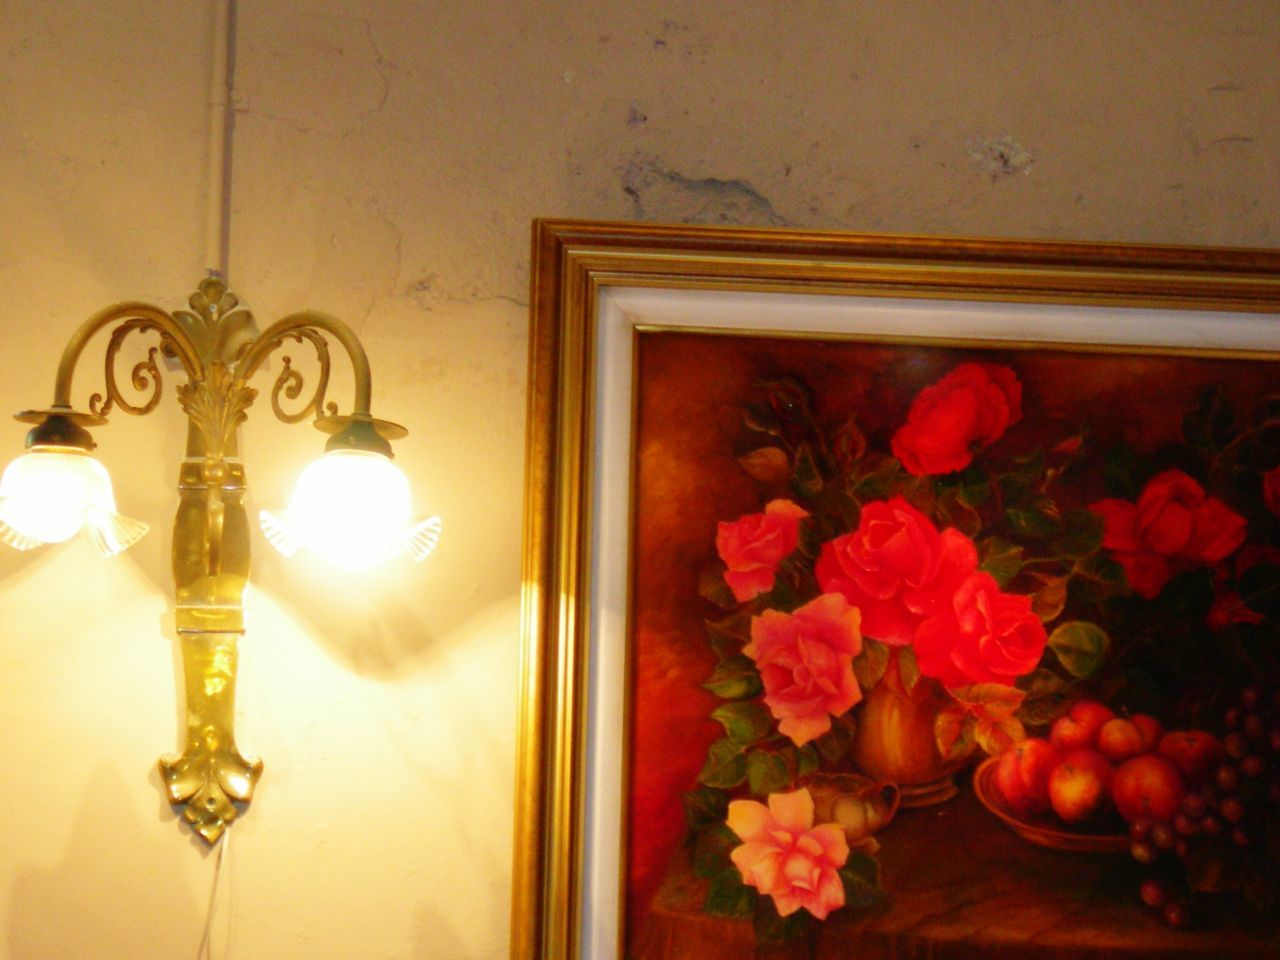 flower, flowering plant, indoors, no people, plant, illuminated, mirror, lighting equipment, window, vase, decoration, architecture, home interior, nature, wall, wall - building feature, reflection, built structure, electric lamp, house, light, flower arrangement, ceiling, floral pattern